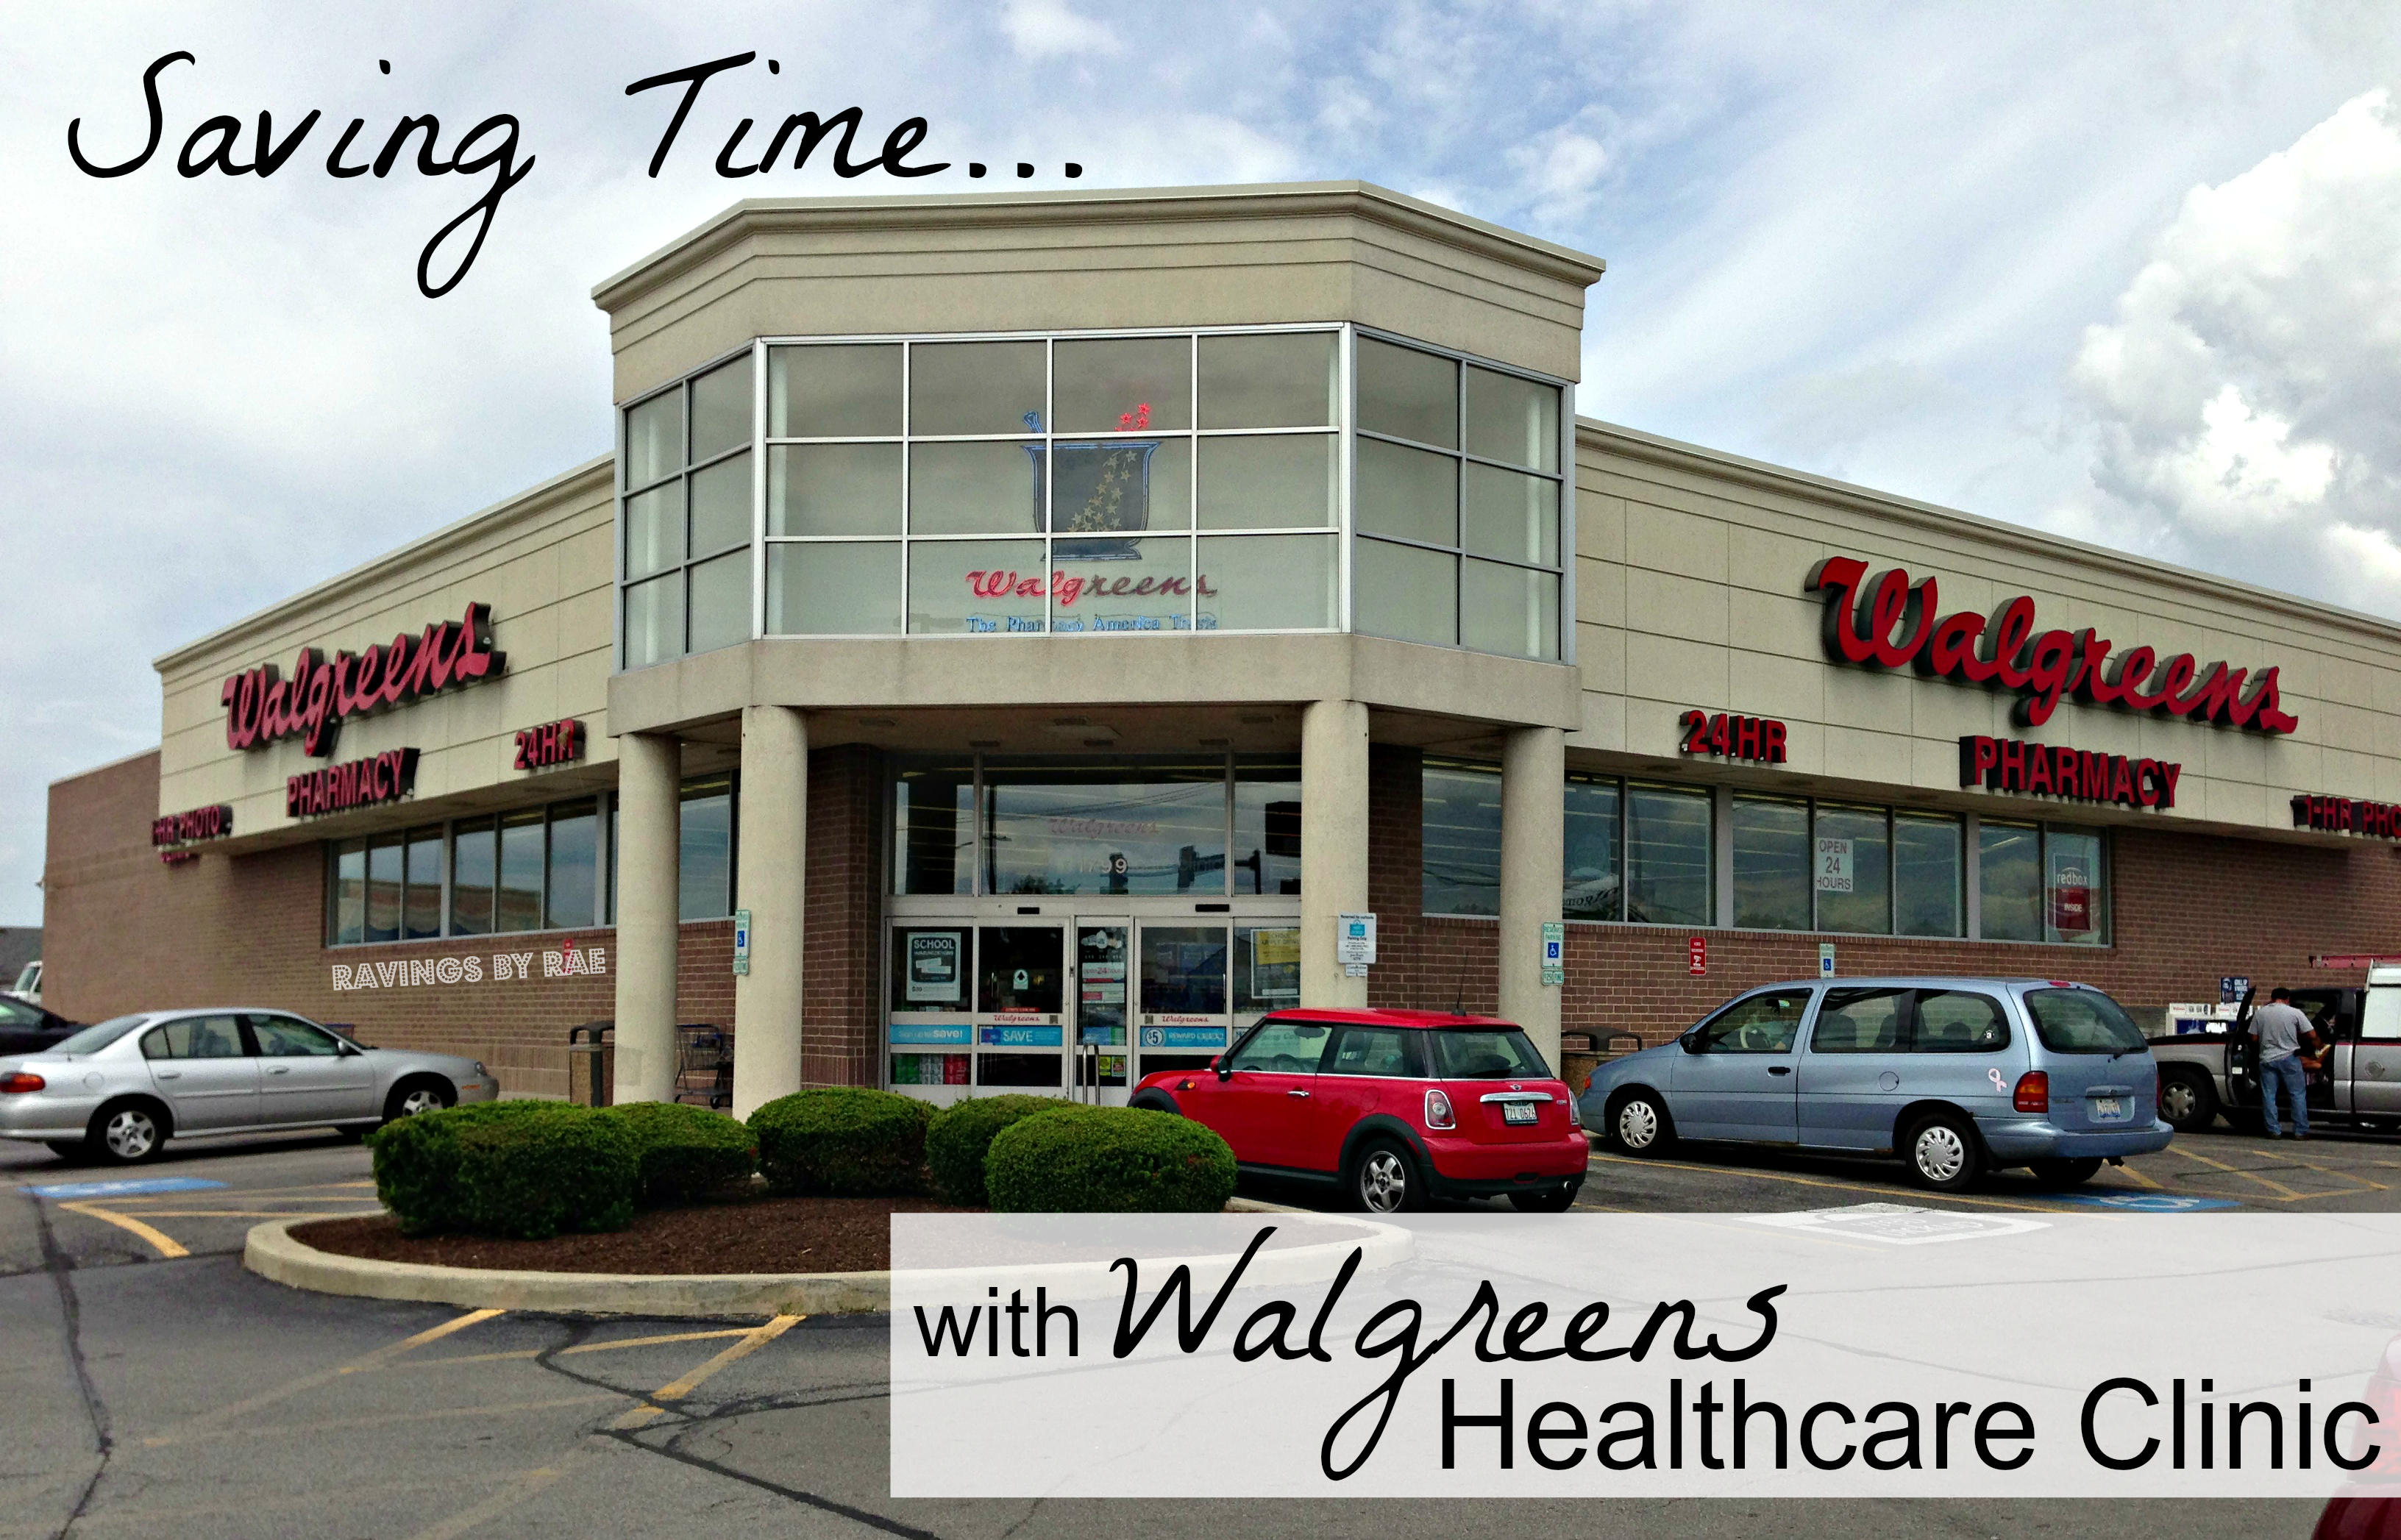 Saving Time at the Walgreens Healthcare Clinic #shop